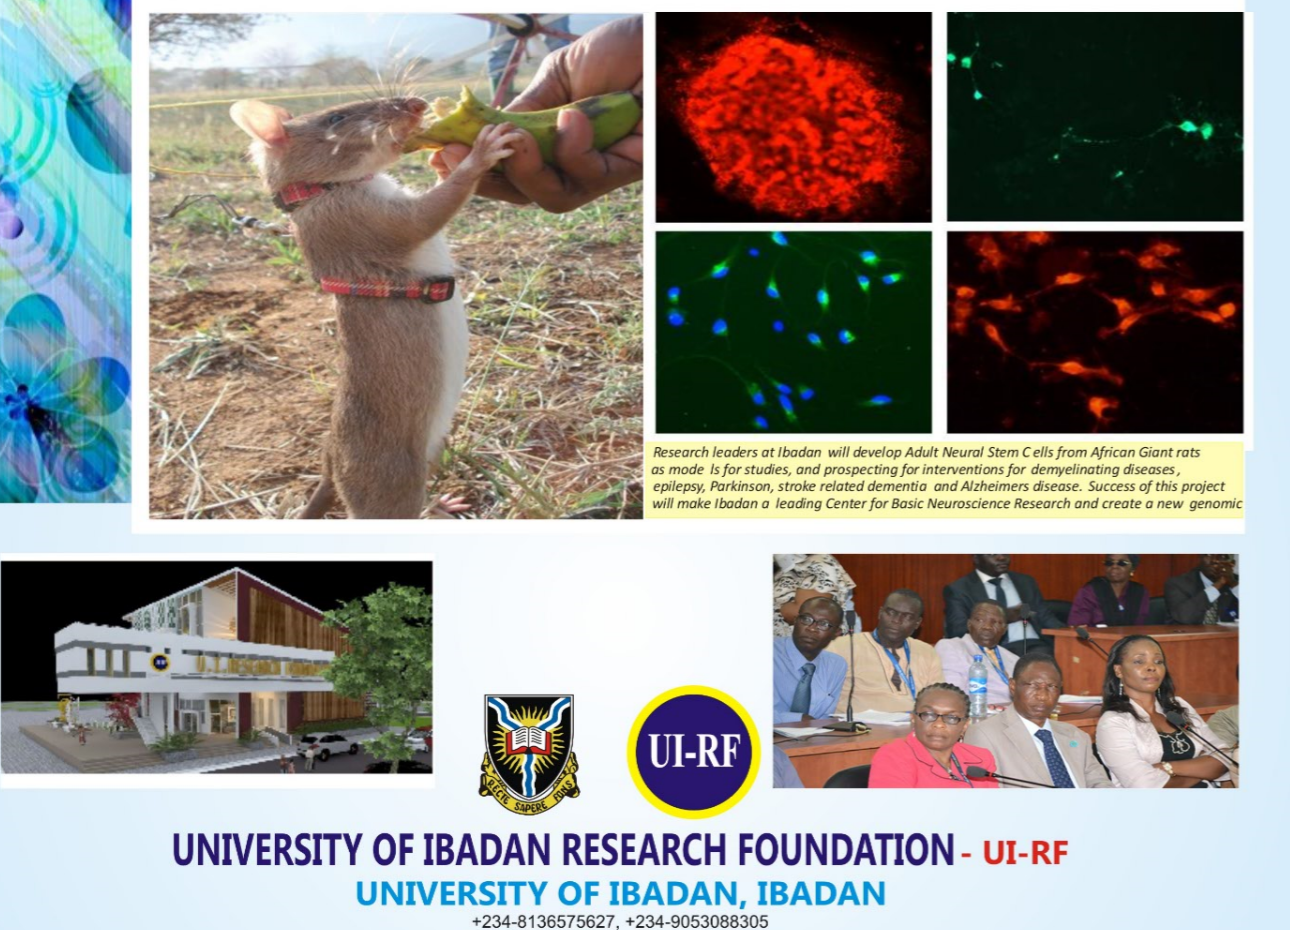 UI RESEARCH FOUNDATION